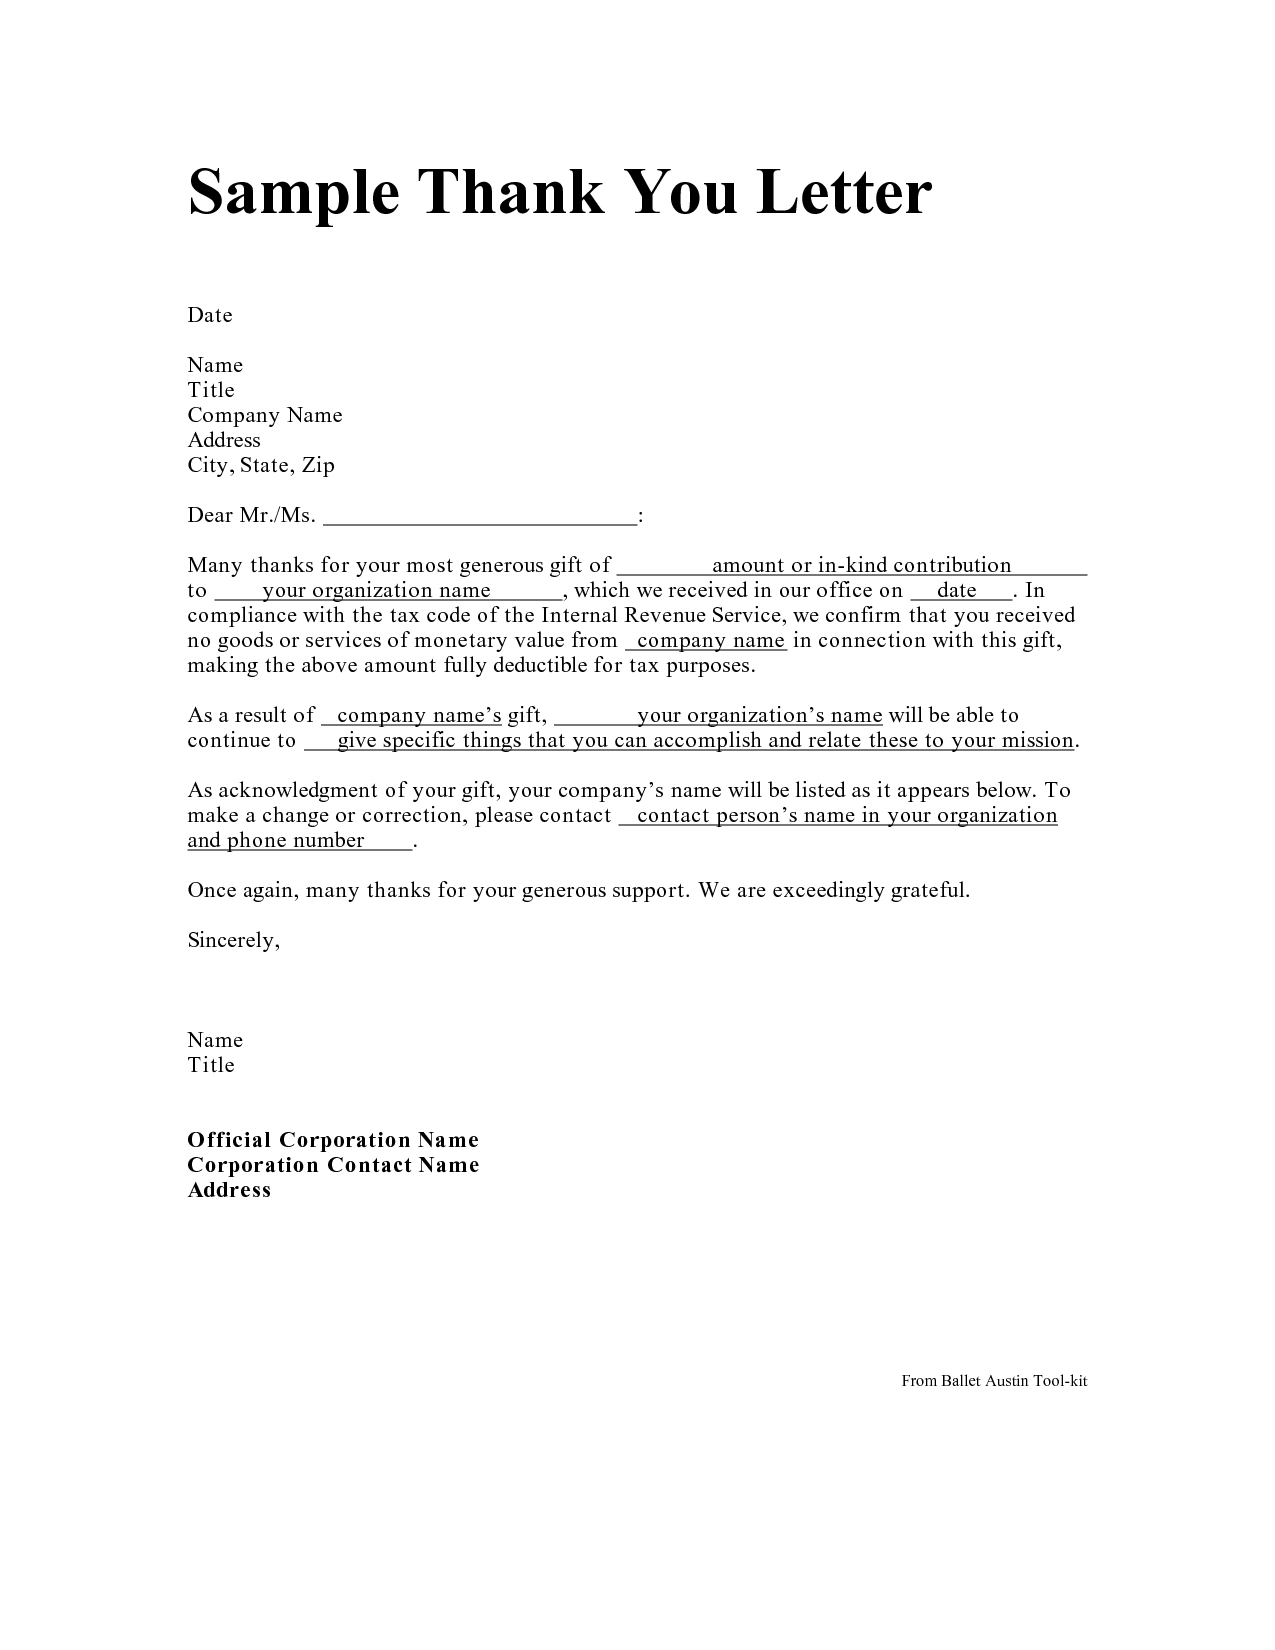 Charitable Donation Letter Template - Personal Thank You Letter Personal Thank You Letter Samples